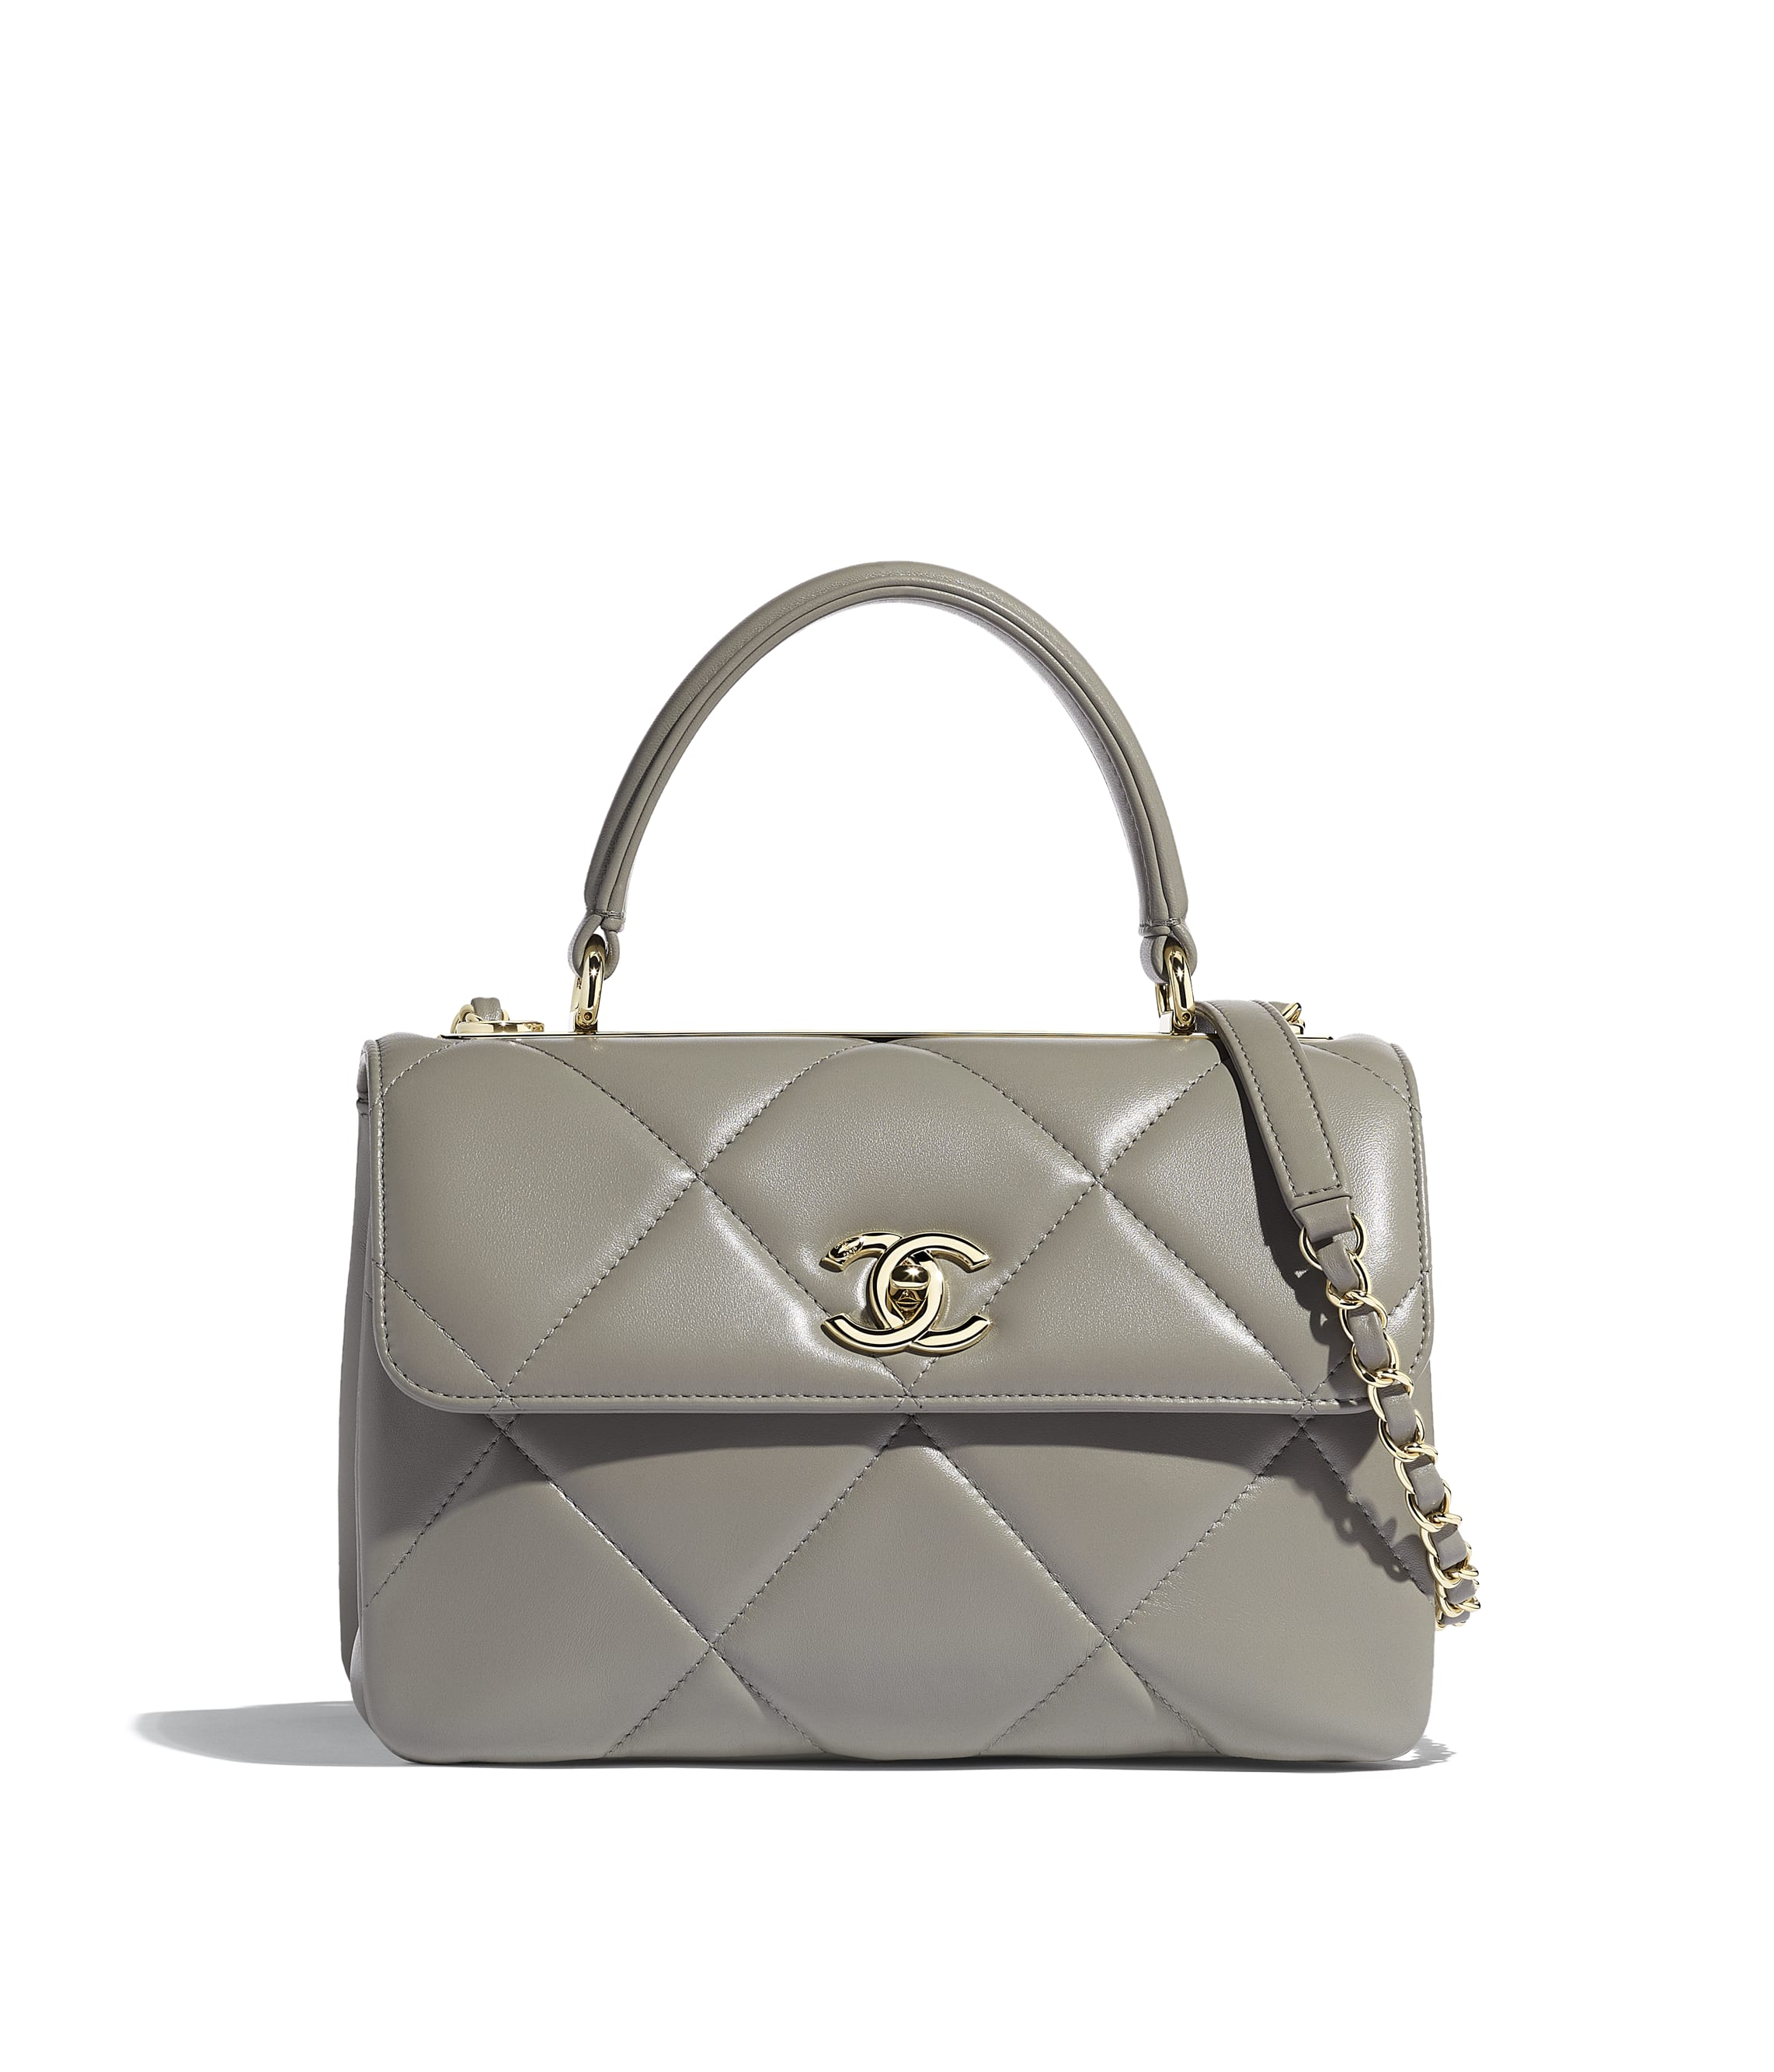 aad17ca4a7 Small Flap Bag with Top Handle, lambskin & gold-tone metal, gray ...